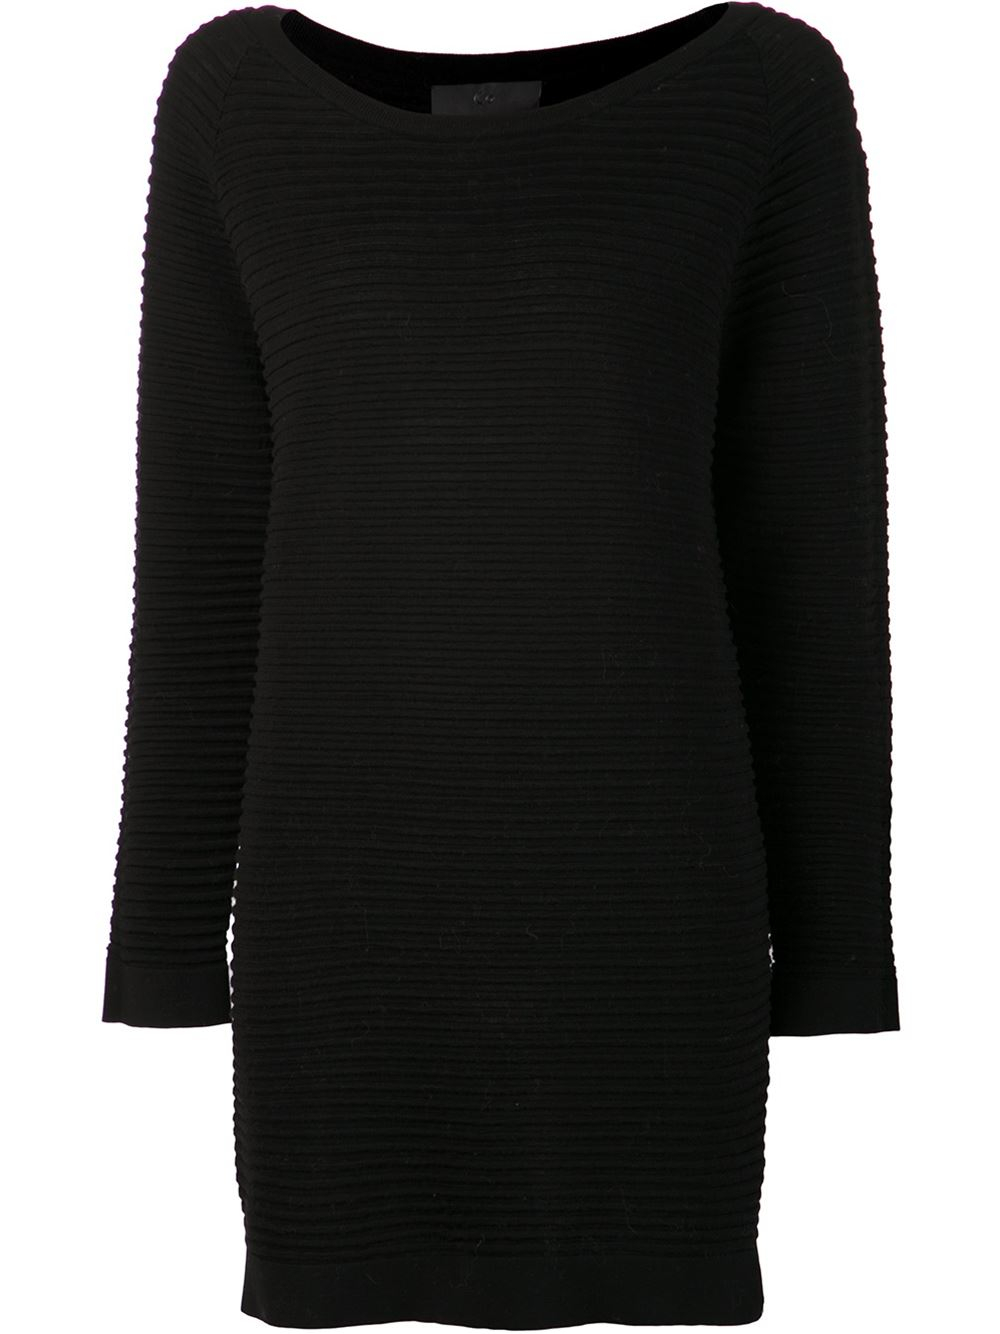 Shop our Collection of Women's Black Sweaters at seebot.ga for the Latest Designer Brands & Styles. FREE SHIPPING AVAILABLE! Macy's Presents: The Edit- A curated mix of fashion and inspiration Check It Out. Bar III Cutout Ribbed Sweater, Created for Macy's.